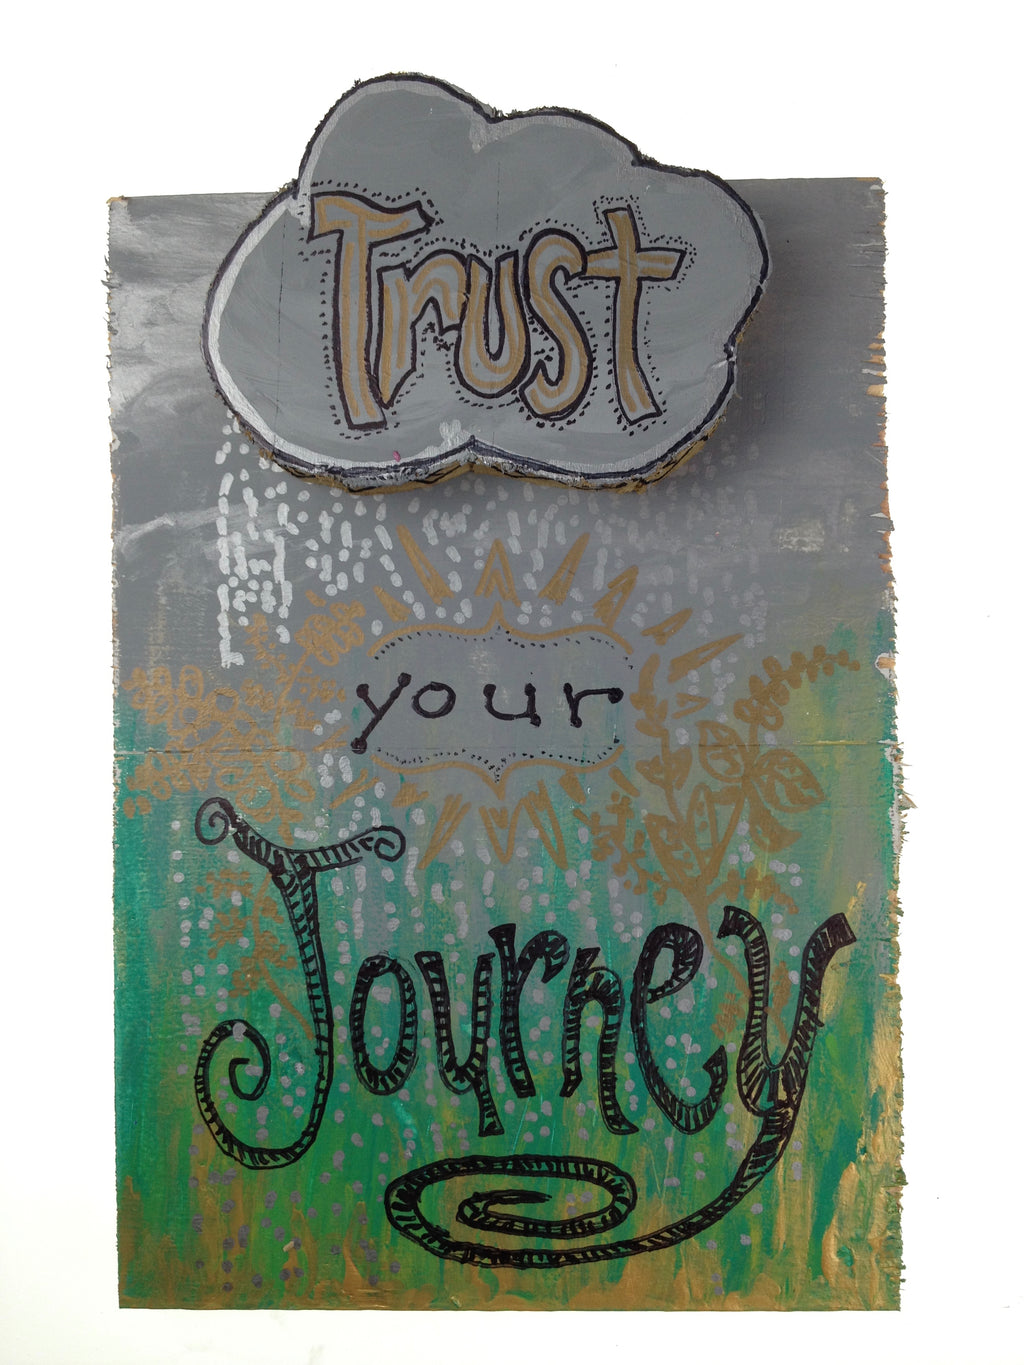 Trust Your Journey - Silver Lining (Piece #00026)